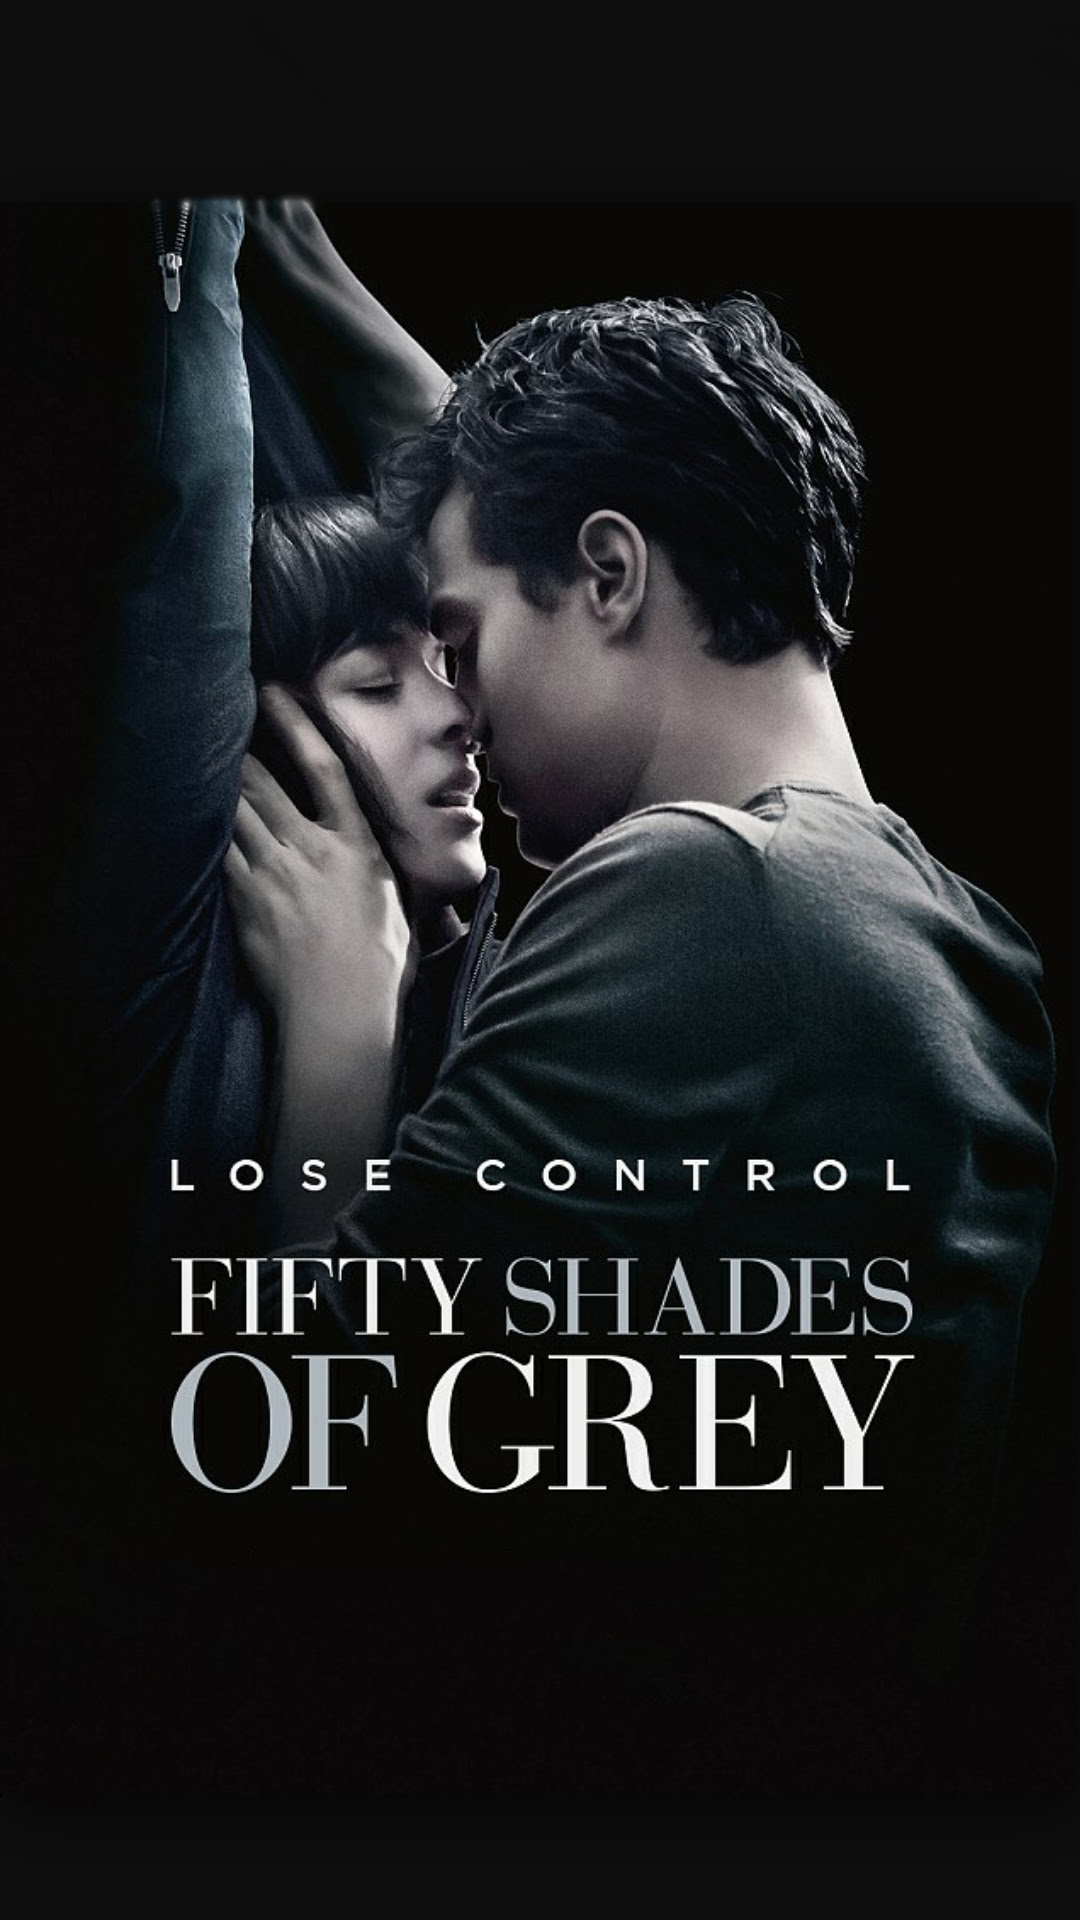 Lose Control Fifty Shades Of Grey Best Htc M9 Wallpapers